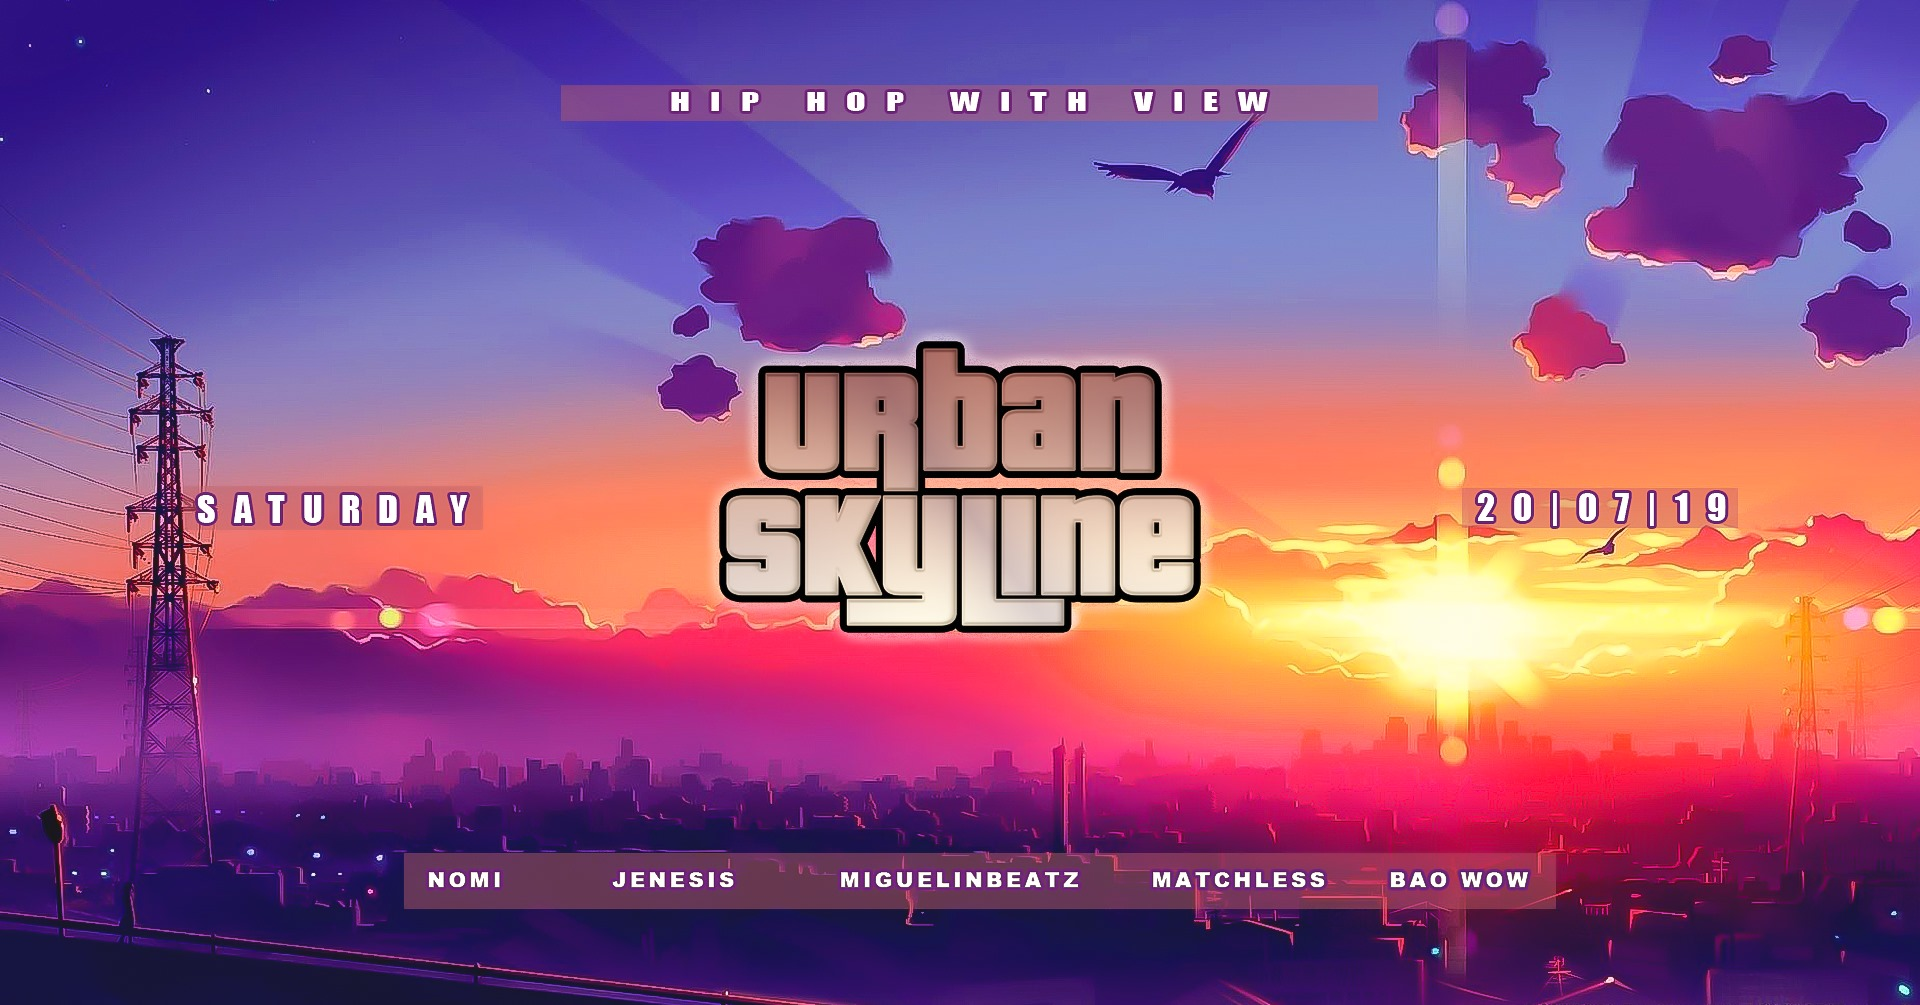 Urban Skyline   We call it ,highest turn up in town'  Once a month we invite people to our Family & Friends meet up in our loving living room and they know what is expecting them. Greatest view over the City with bomb turn up vibes. We create an interaction with people on the dance floor and the DJ.